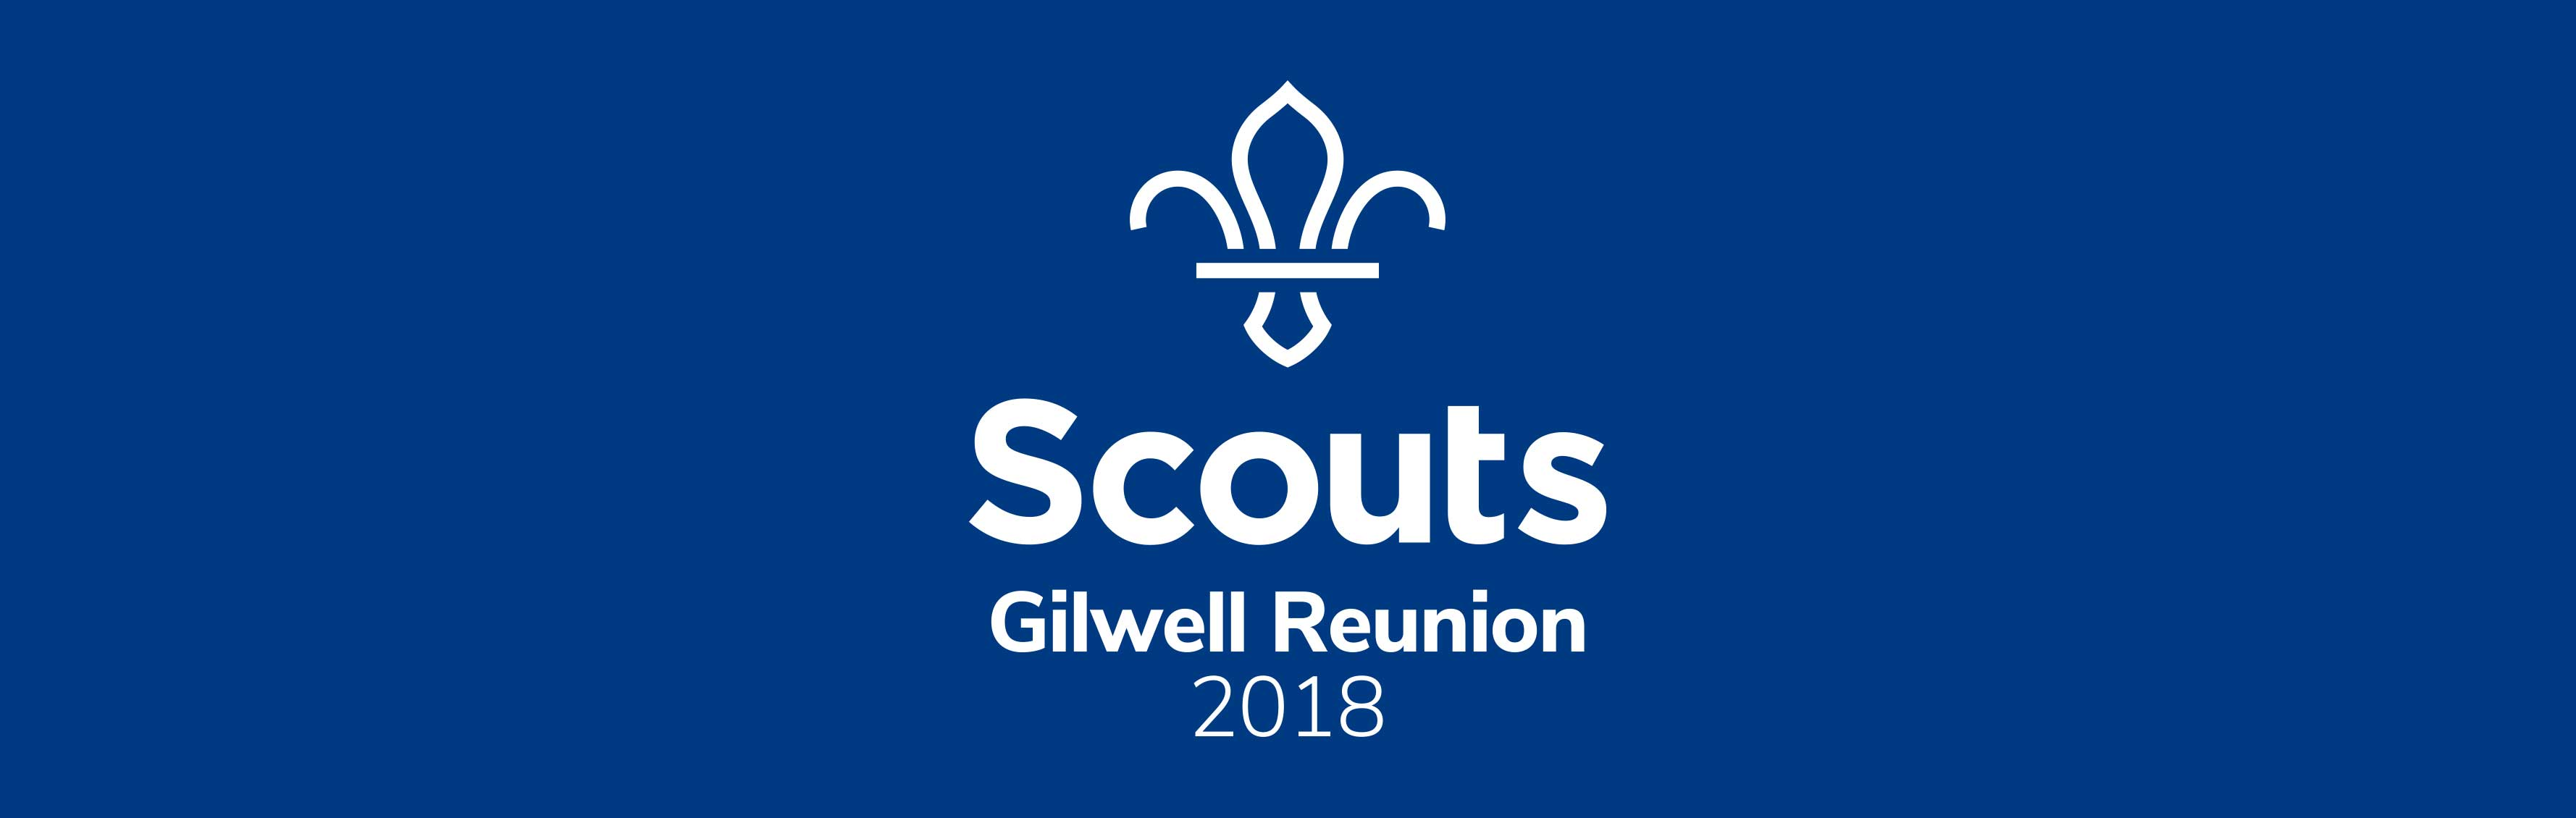 Gilwell Reunion 2018 – Advertisers